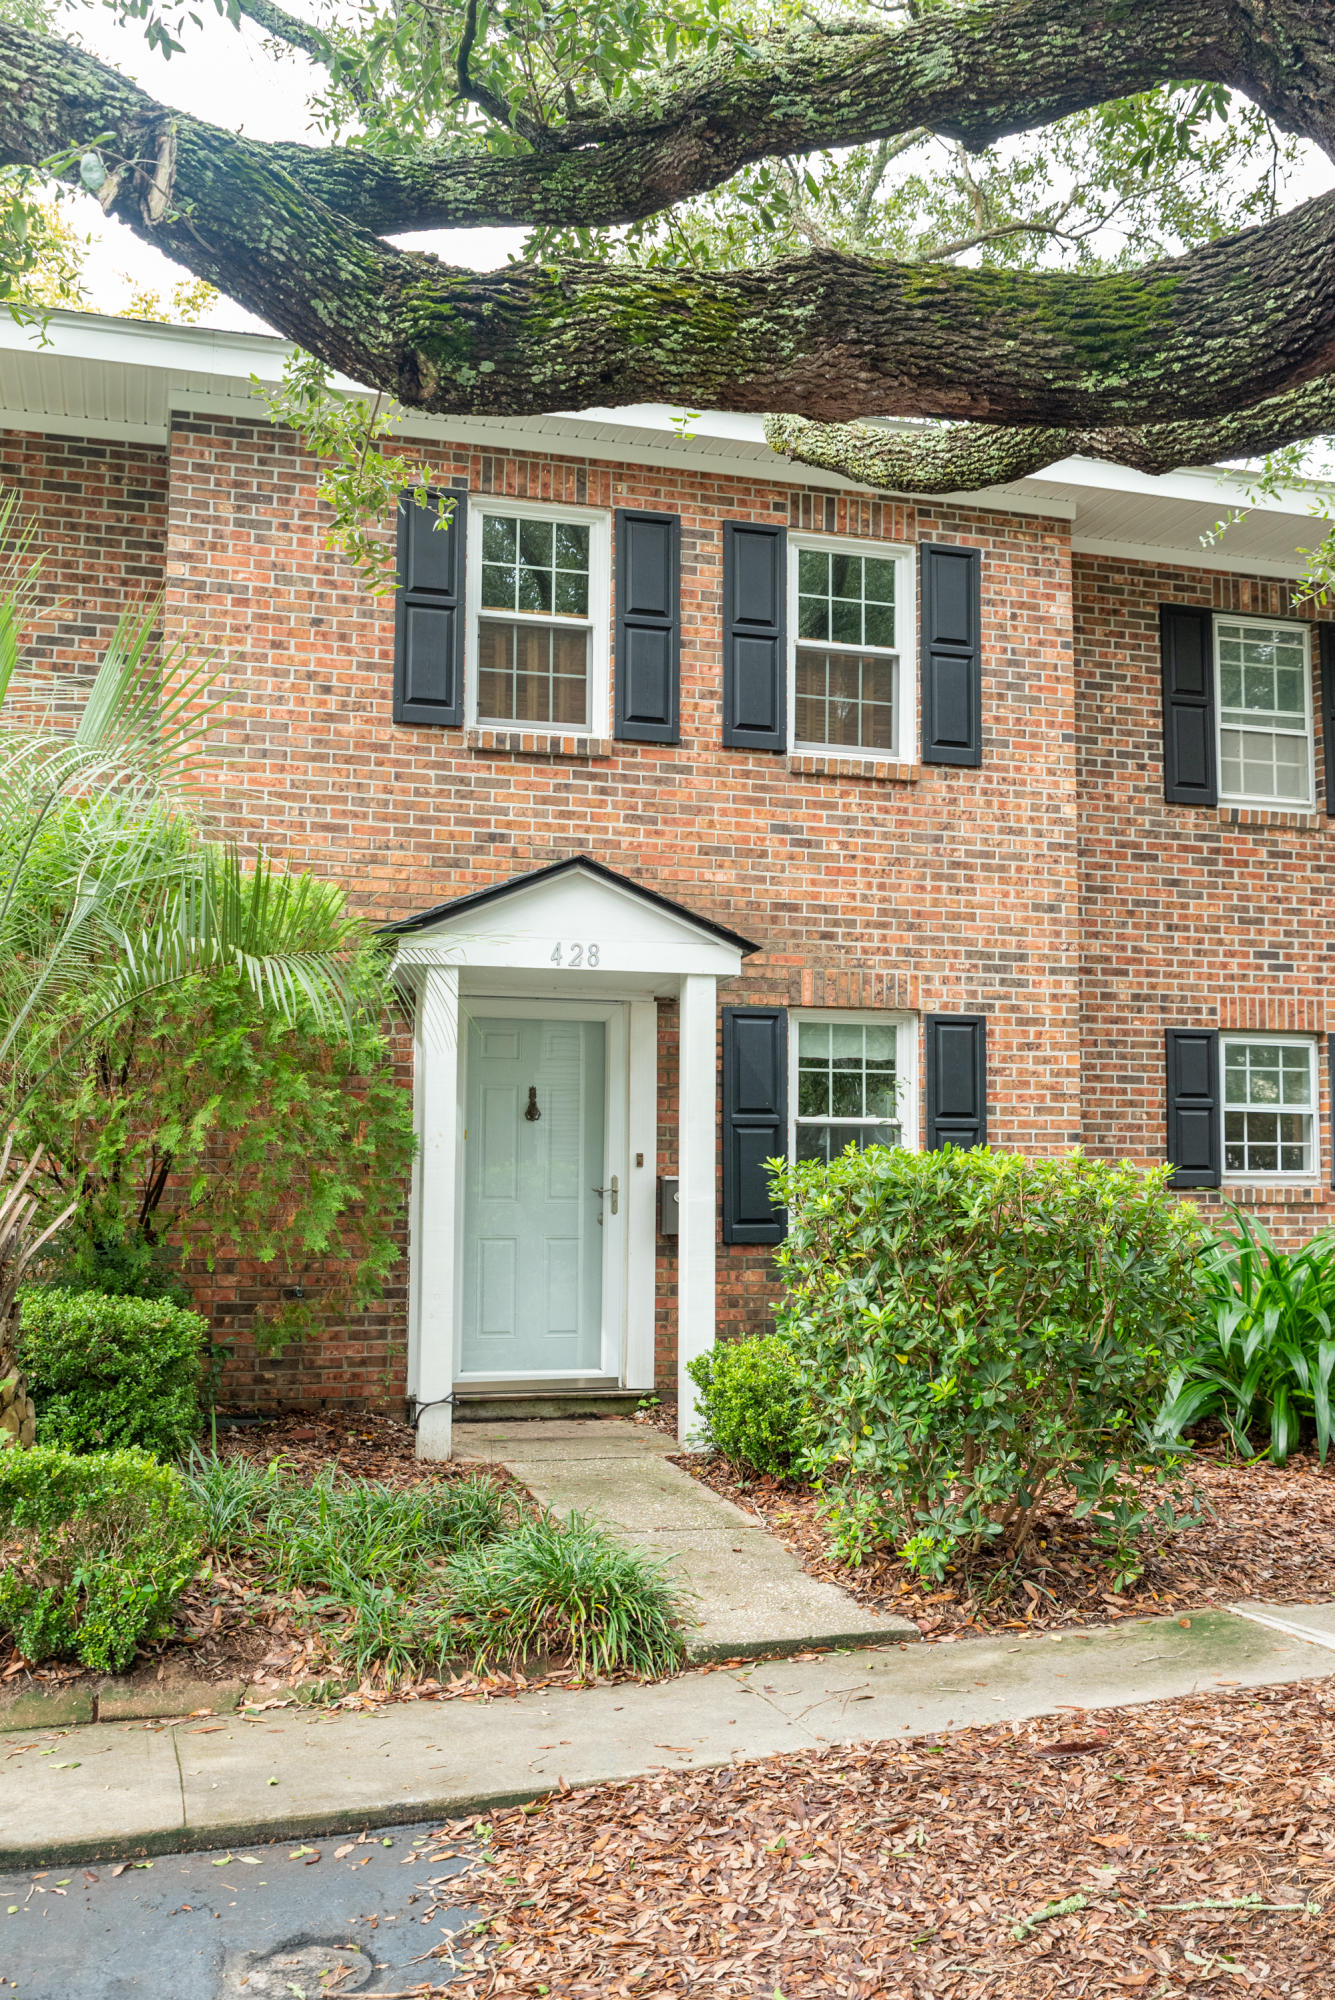 Heritage Village Homes For Sale - 428 Carriage, Mount Pleasant, SC - 2